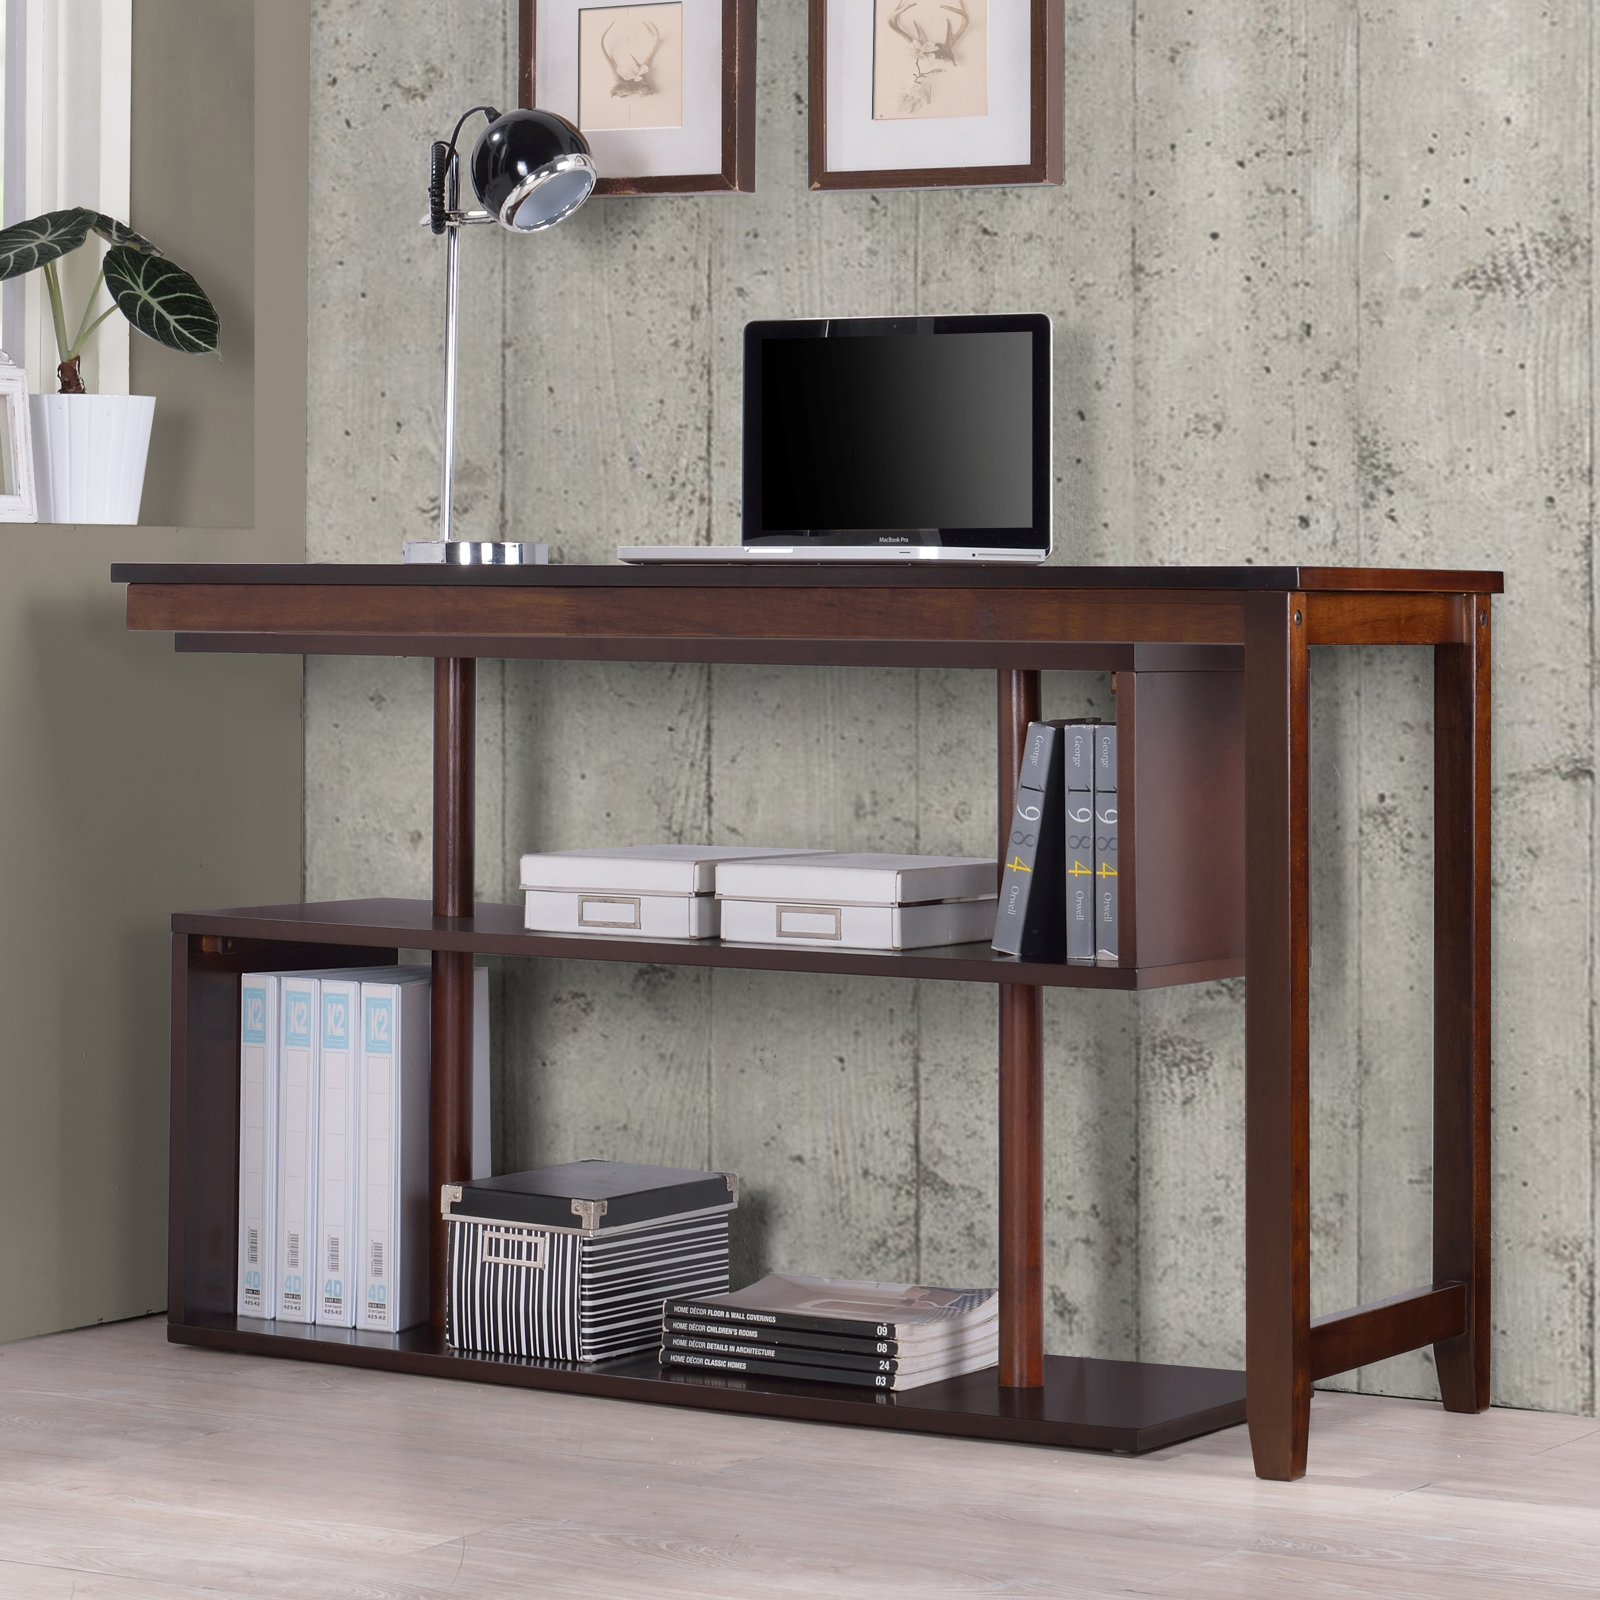 Home Office Hamburg Hamburg Contemporary Virginia Swing Out Desk Classic Espresso